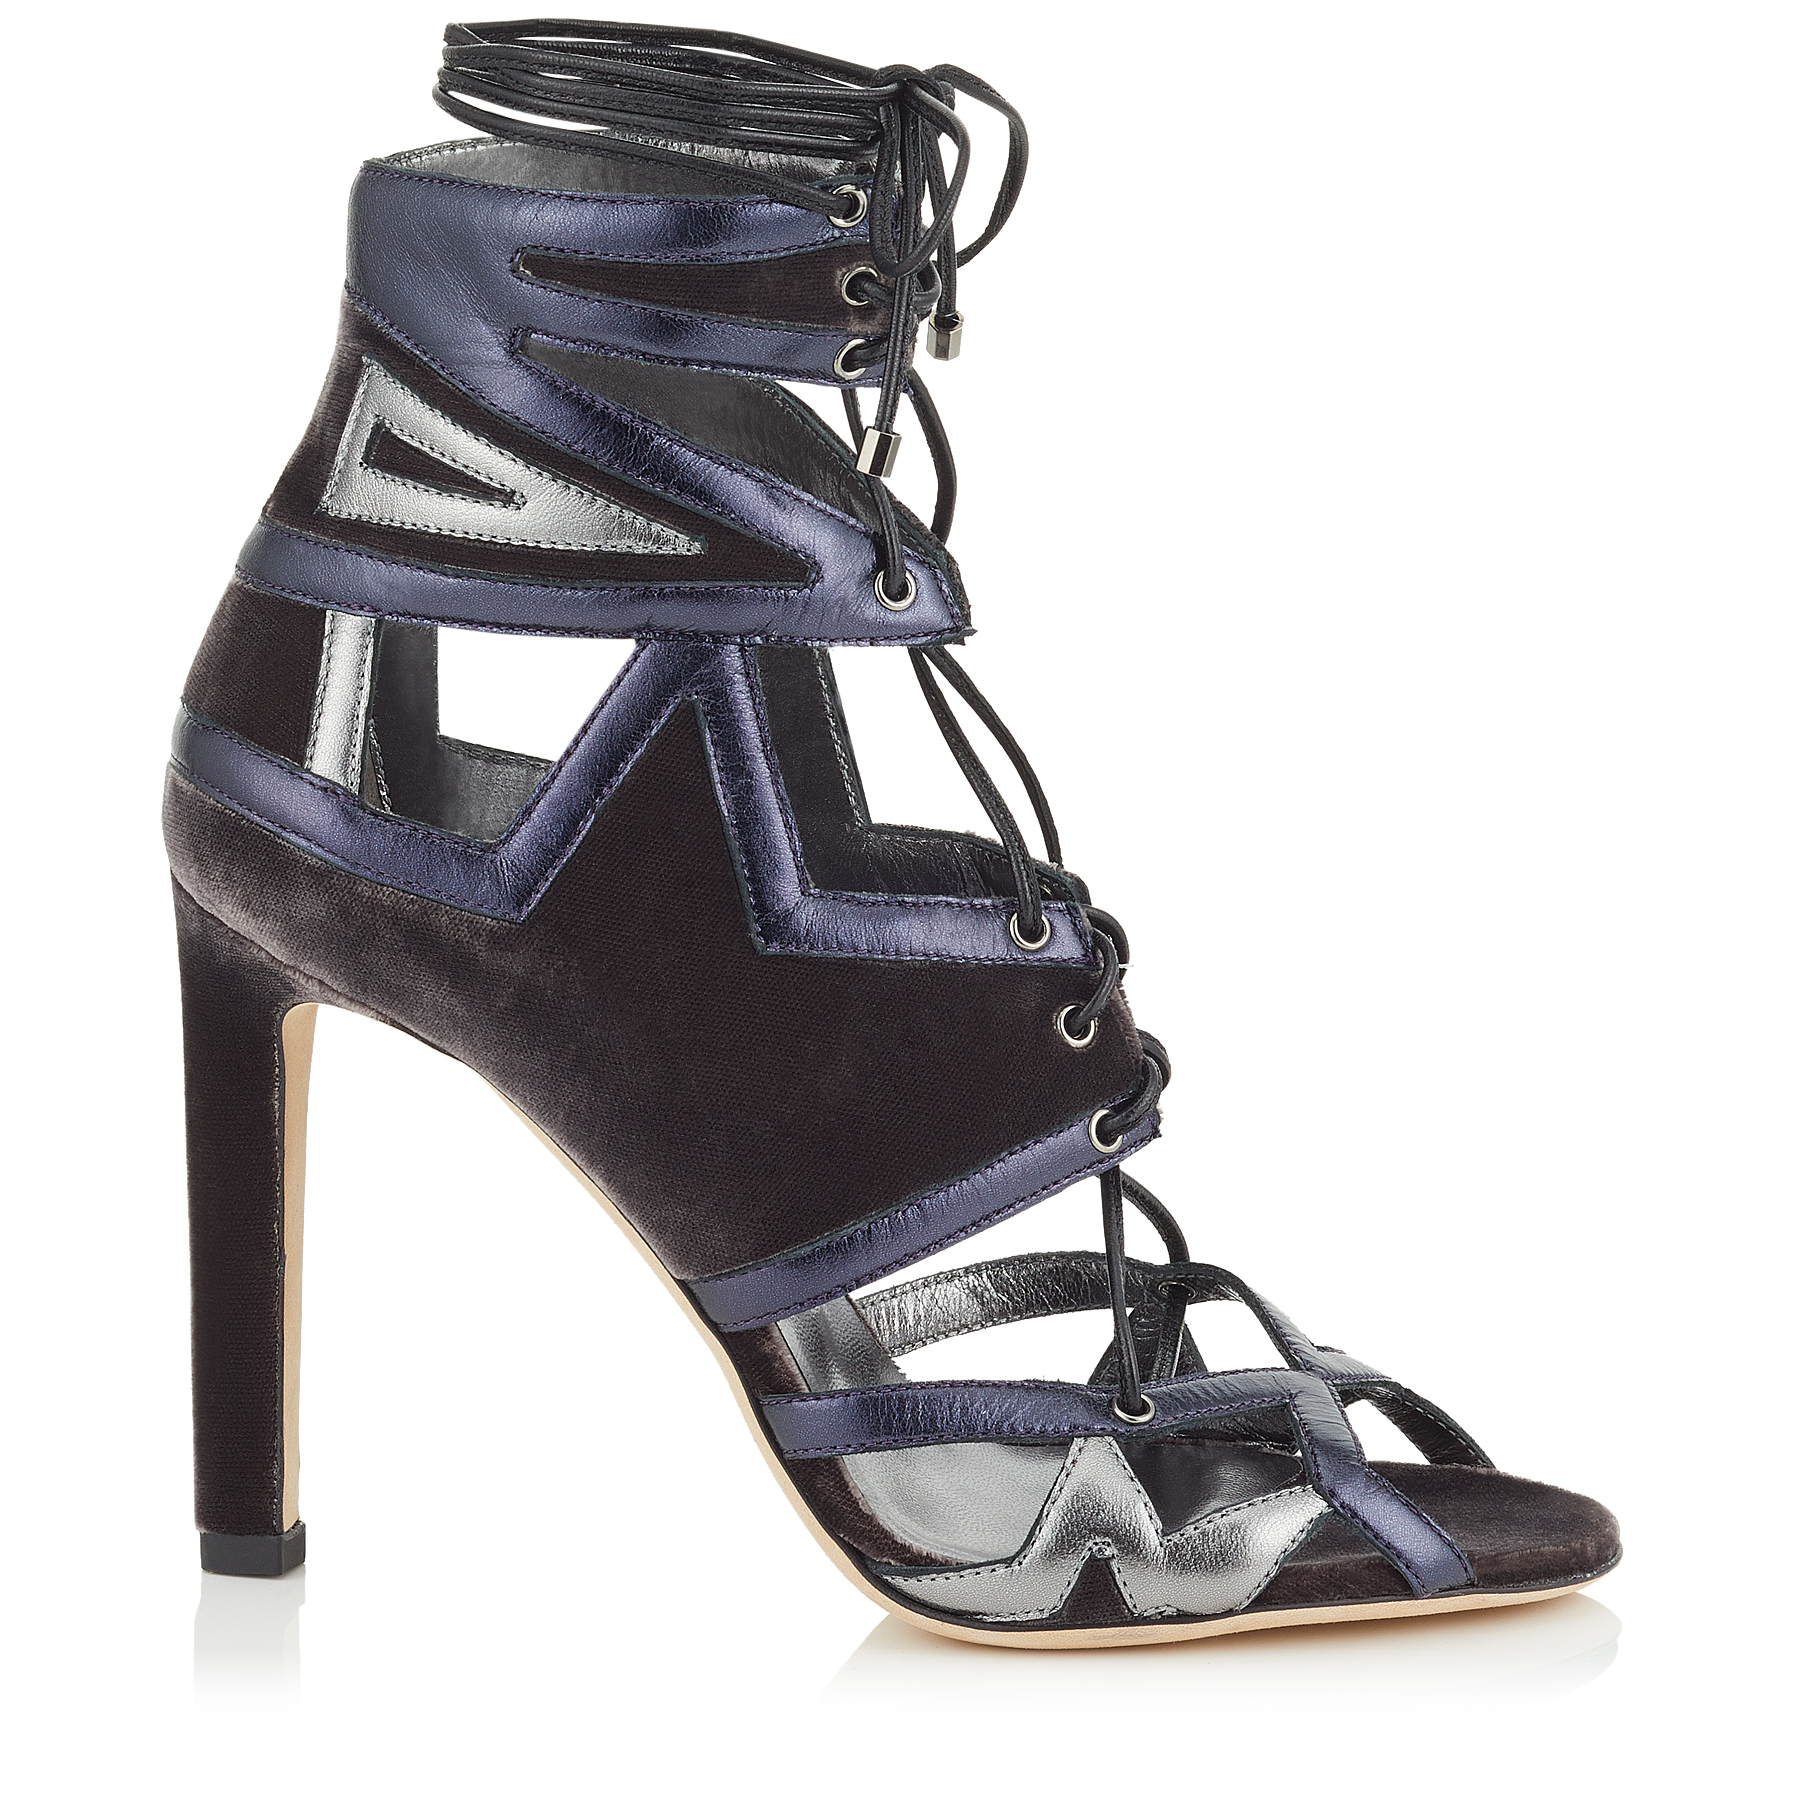 DENNEY 100 Mink Velvet and Metallic Nappa Leather Sandals by Jimmy Choo